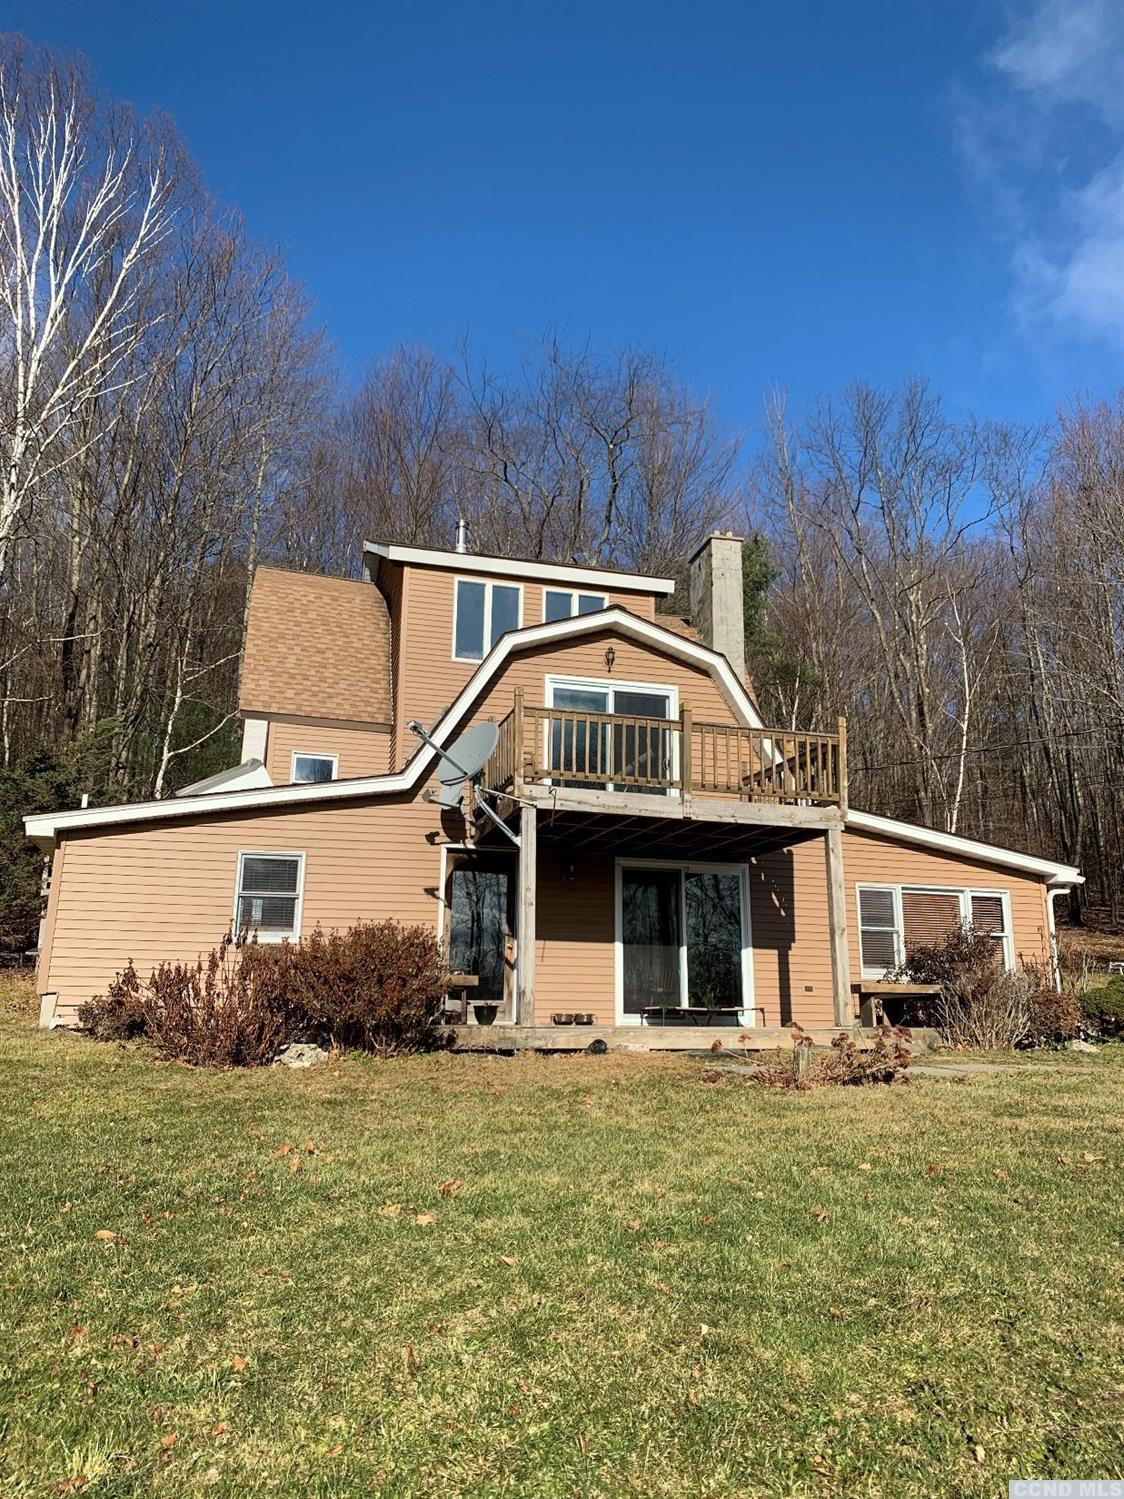 You'll feel right at home in this cozy 1960's contemporary set high on a hill.  Views of the Berkshires. Three floors of living space all with a view.  Pick your space in this one. Bedrooms with private decks. Cozy living/family room with wall of stone for a backdrop with a soapstone wood stove as the main focal point.  Sitting area on second floor.  Sweet retreat close to skiing or cultural events.  Privacy yet close to everything the Berkshires has to offer.  Within 30 minutes to Albany.